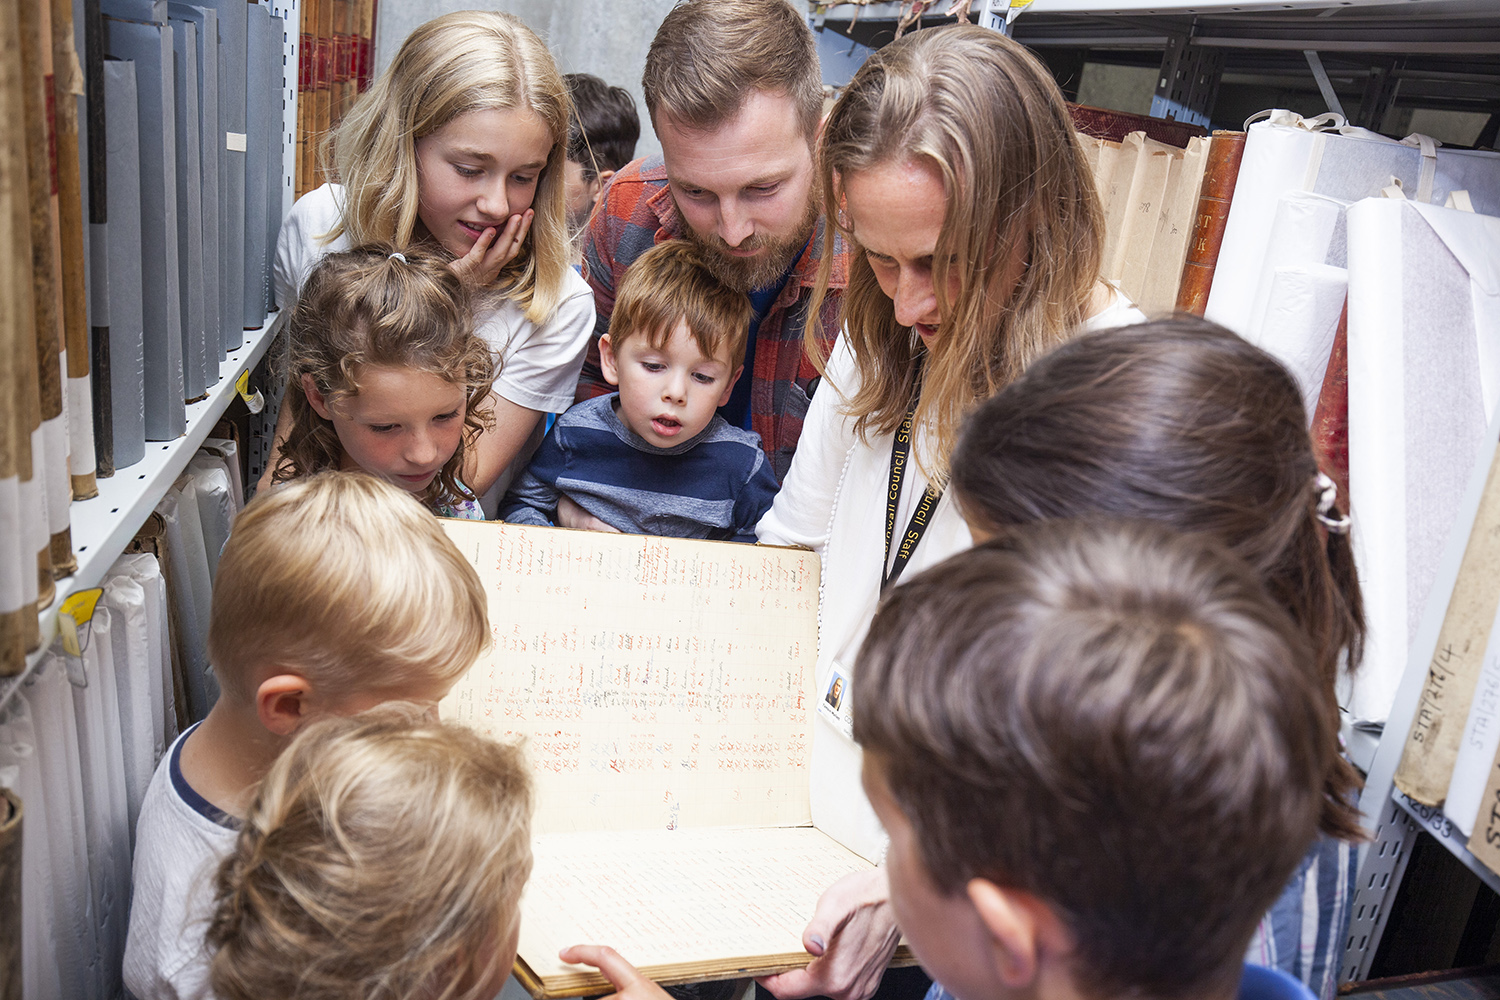 Photo of group of adults and children looking at a large book.